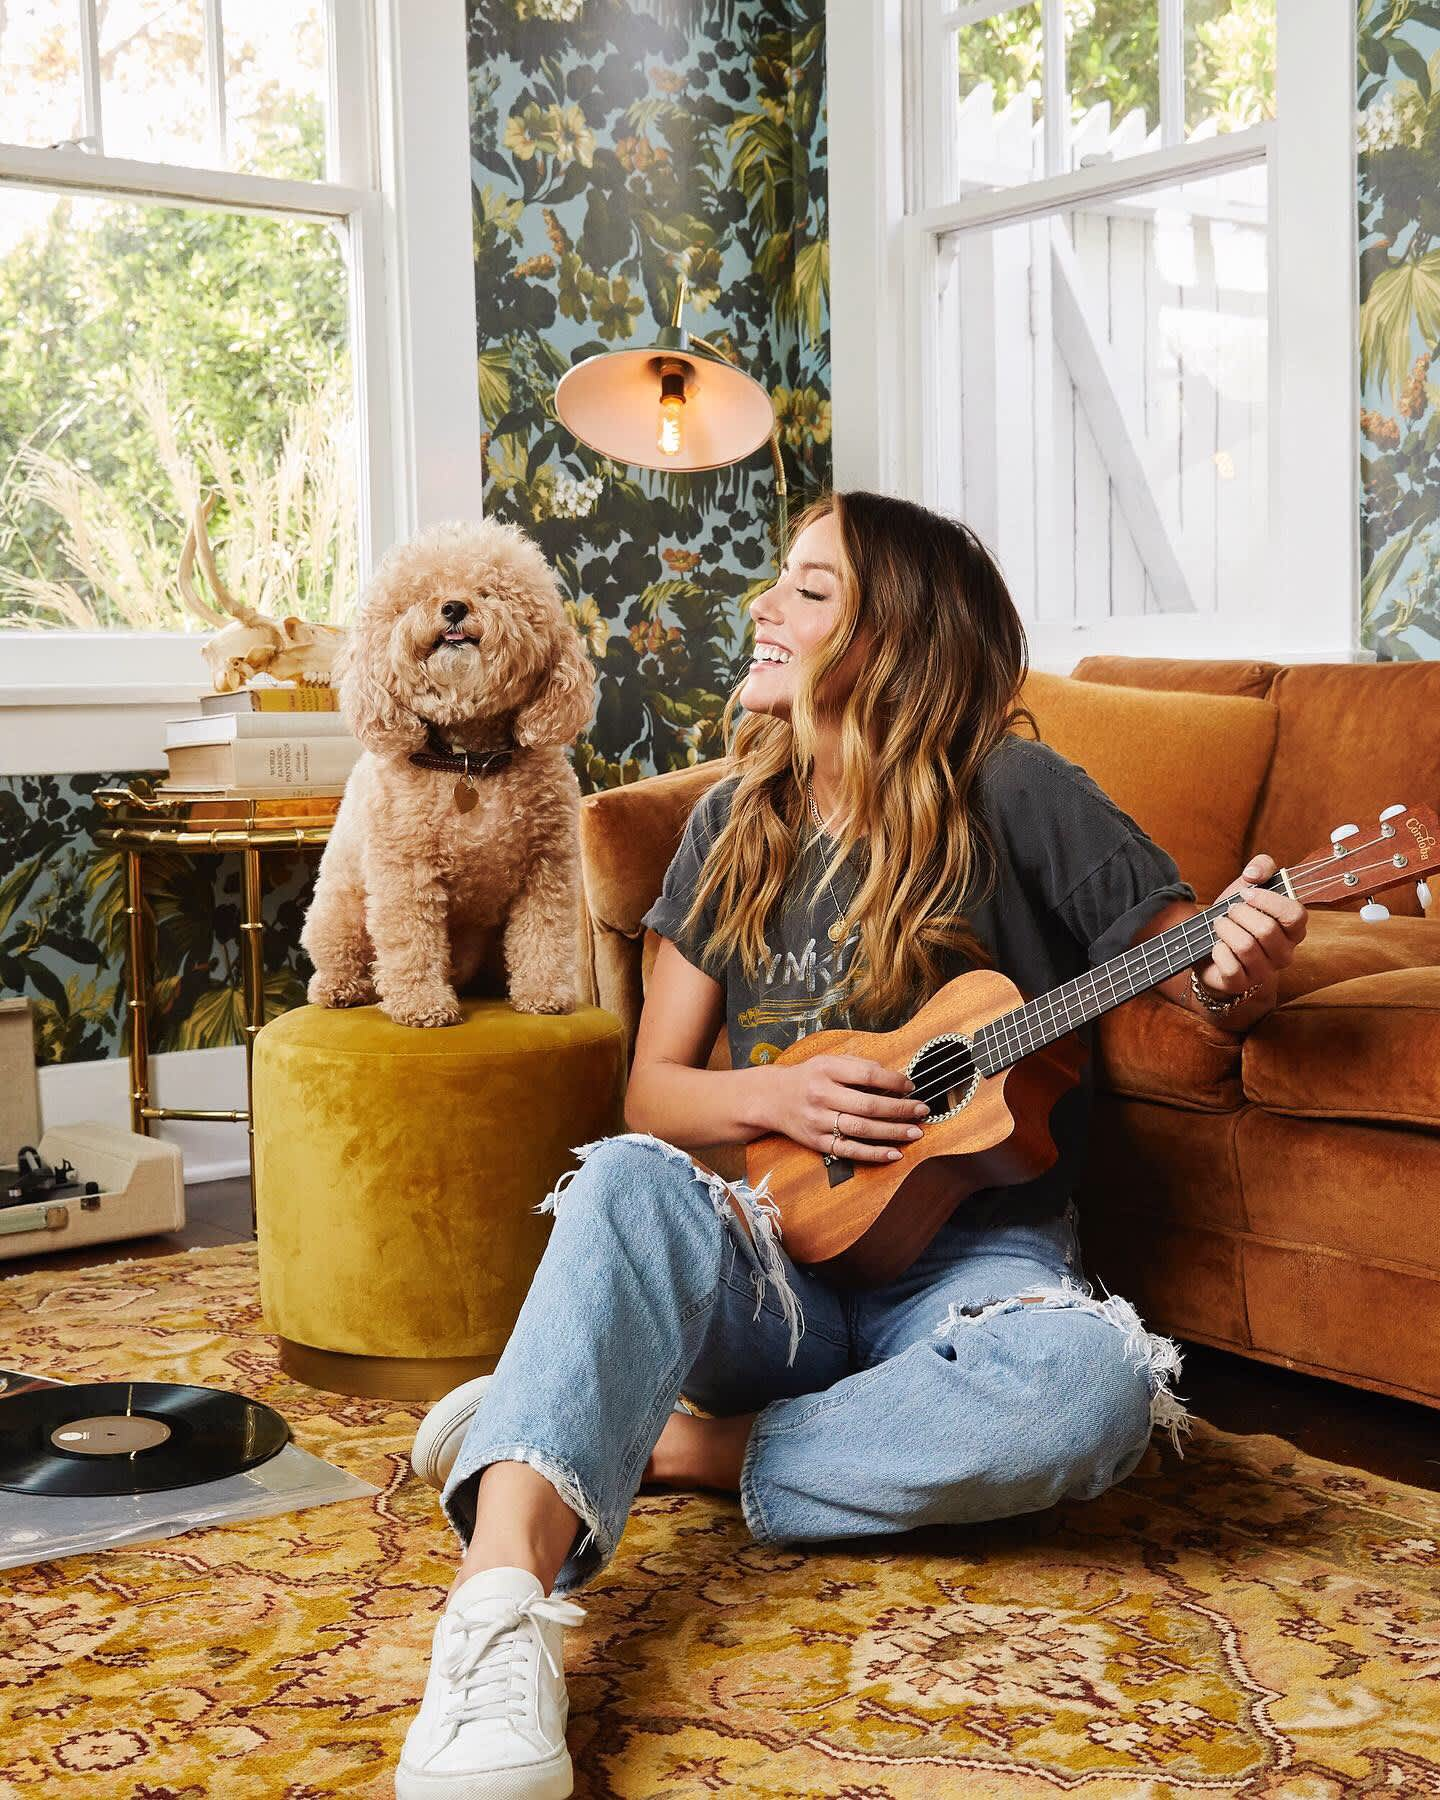 HOLLYWOOD AT HOME - Portraits of Chloe Bennet for People Magazine